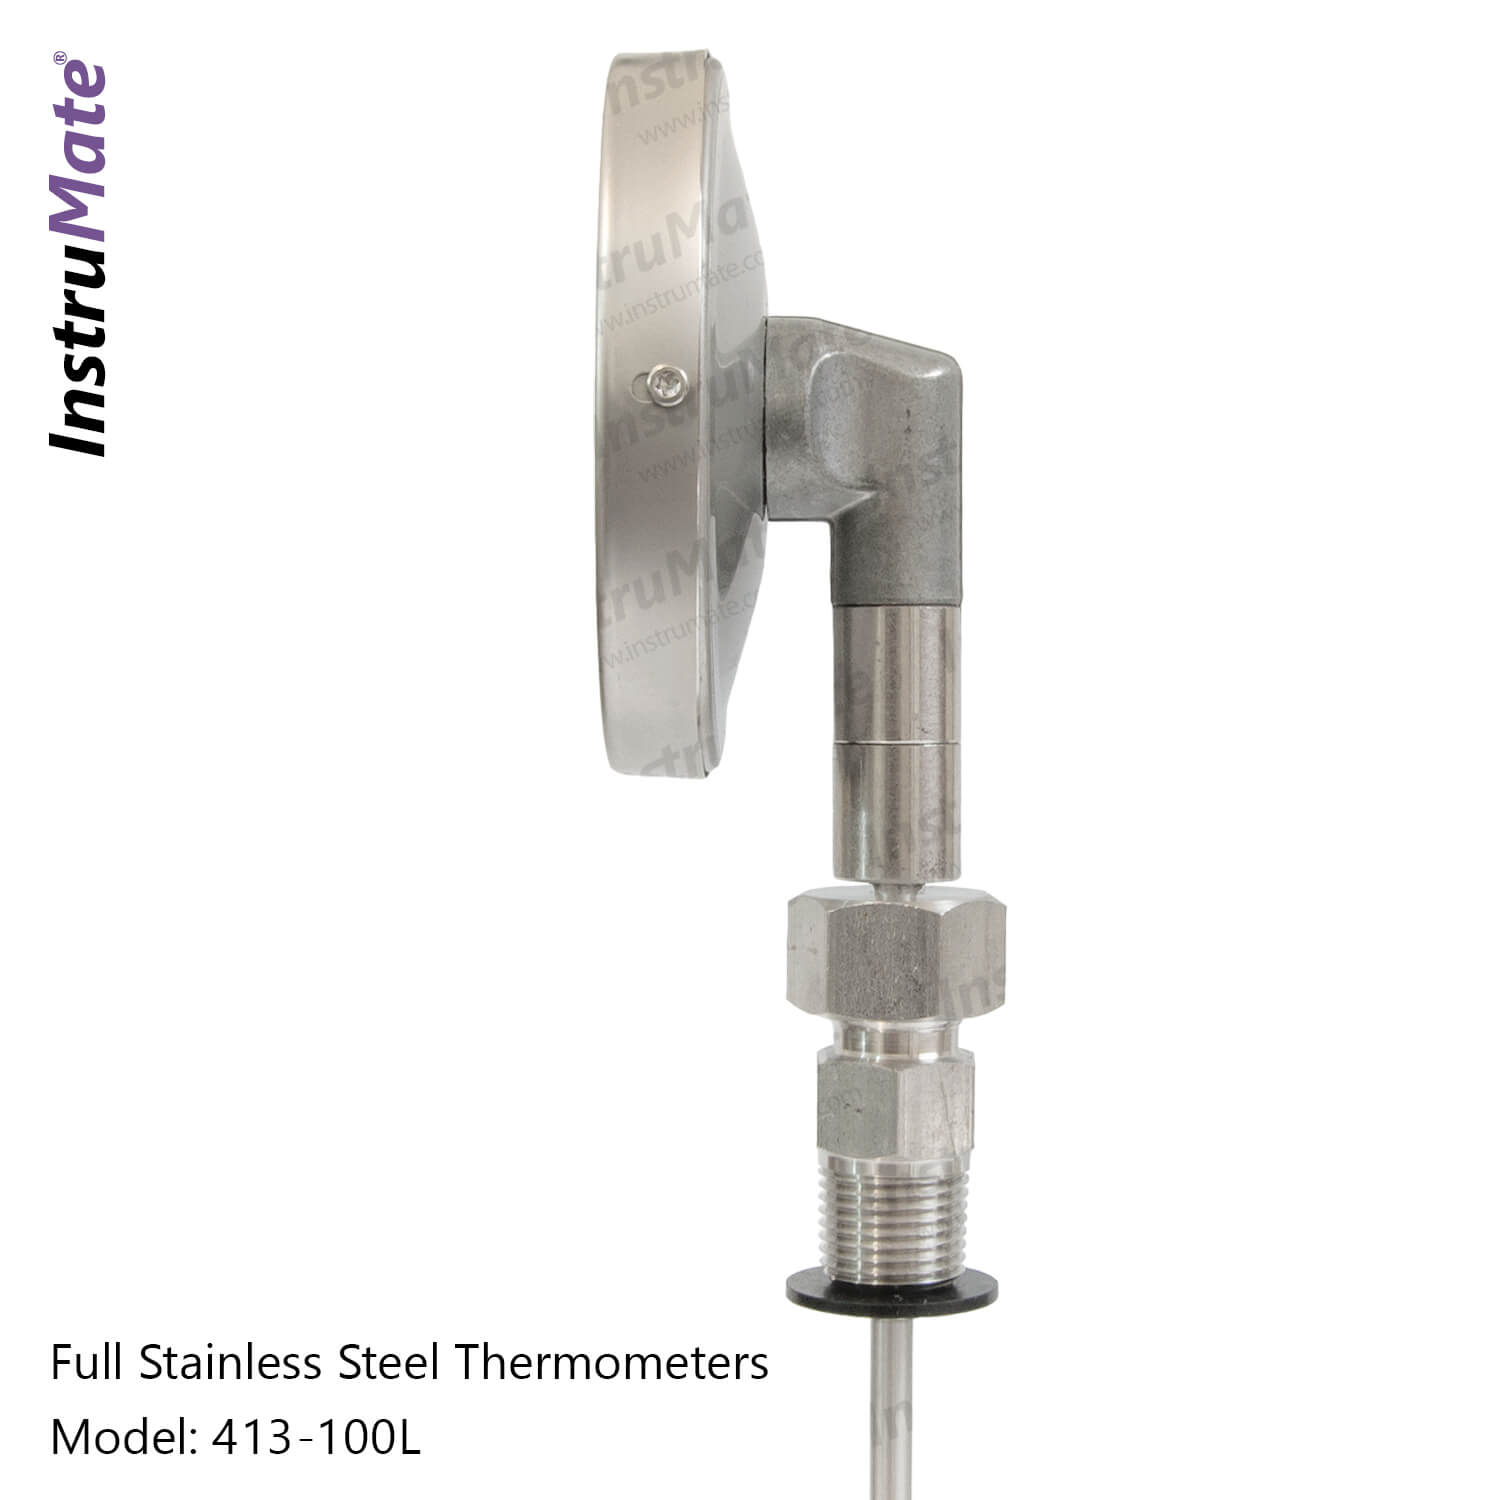 Industrial thermometer - 413 - InstruMate